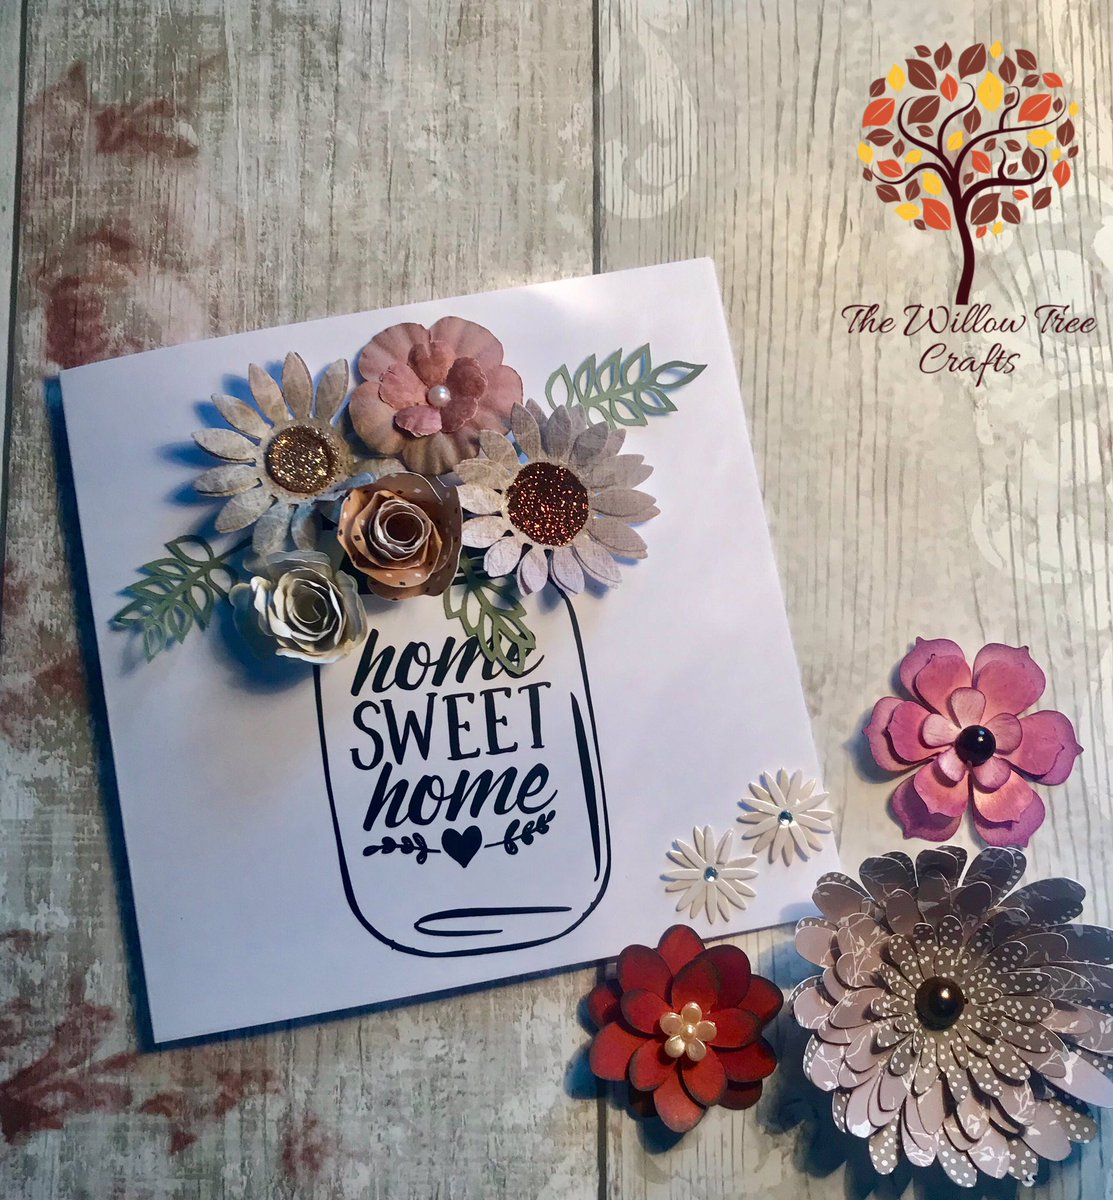 Home sweet home card each card will be unique to you depending on colour choice and flower designs  cards are 6x6 inch  made from high quality 250 gsm card £3.50  inbox to order yours. #handmade #greetingcards #homesweethome #paperflowers <br>http://pic.twitter.com/kZERvrN5ym